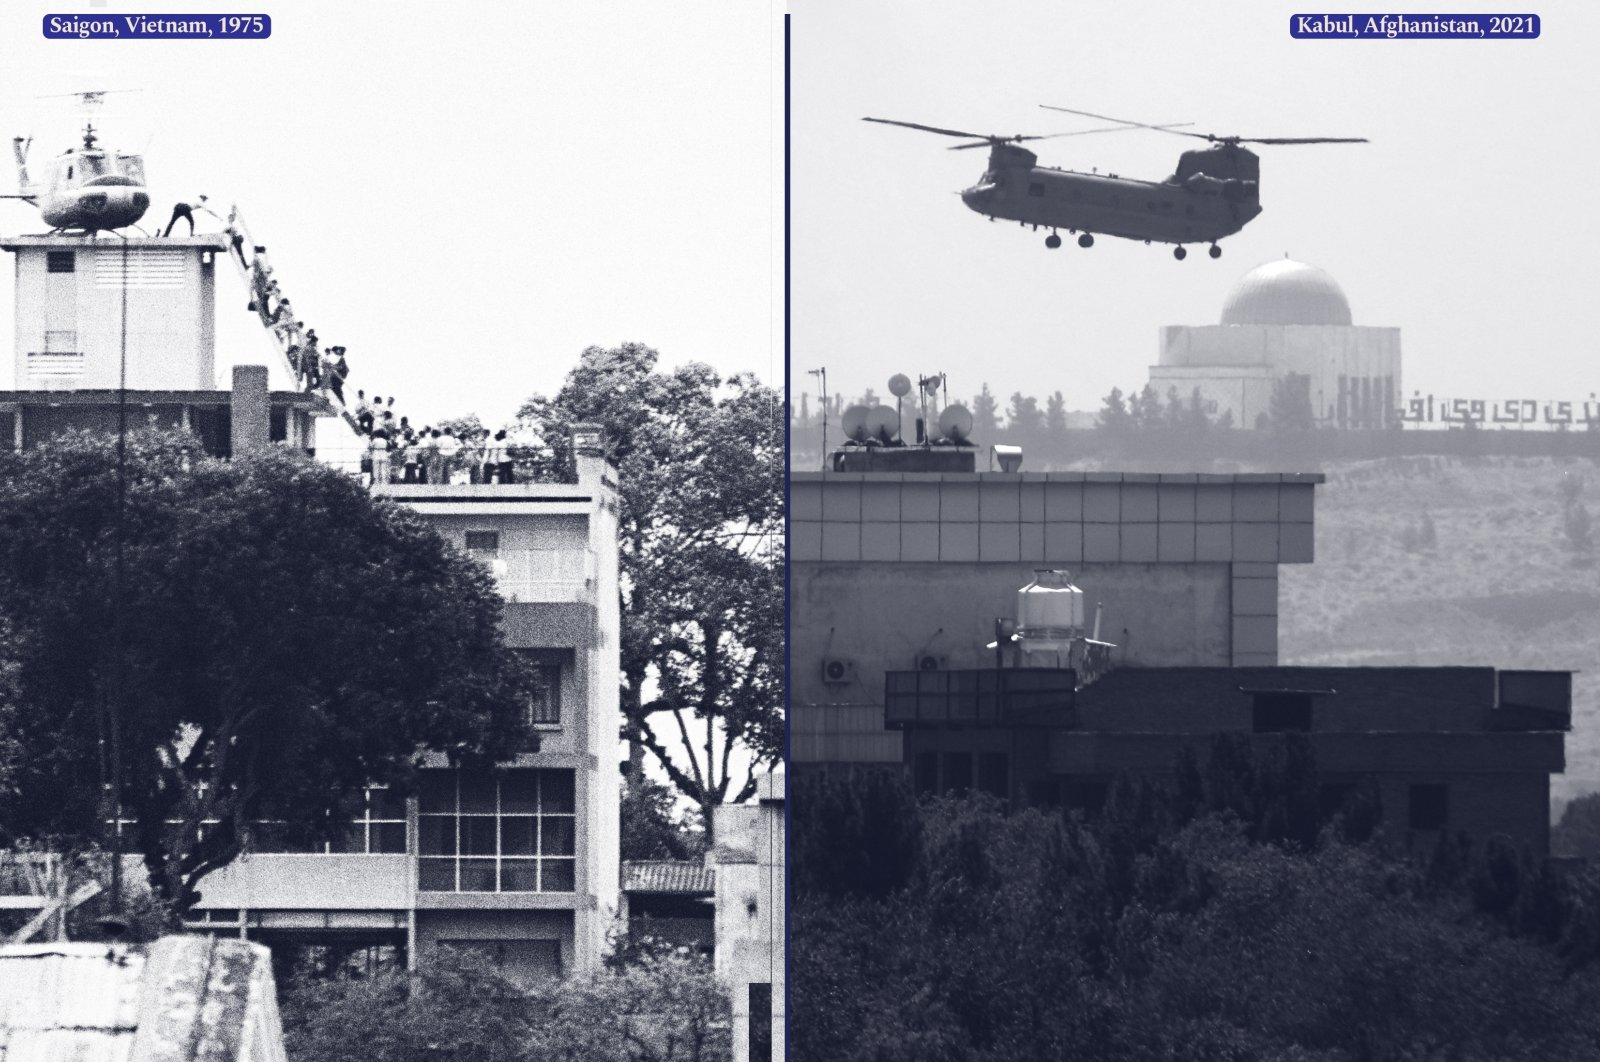 A combination picture of a CIA employee (most likely O.B. Harnage) helping Vietnamese evacuees onto an Air America helicopter from the top of 22 Gia Long Street, a half mile from the U.S. Embassy, Saigon, Vietnam, April, 1975 (Getty Images) and a U.S. Chinook helicopter flying over the U.S. Embassy in Kabul, Afghanistan, Aug. 15, 2021. (AP Photo)